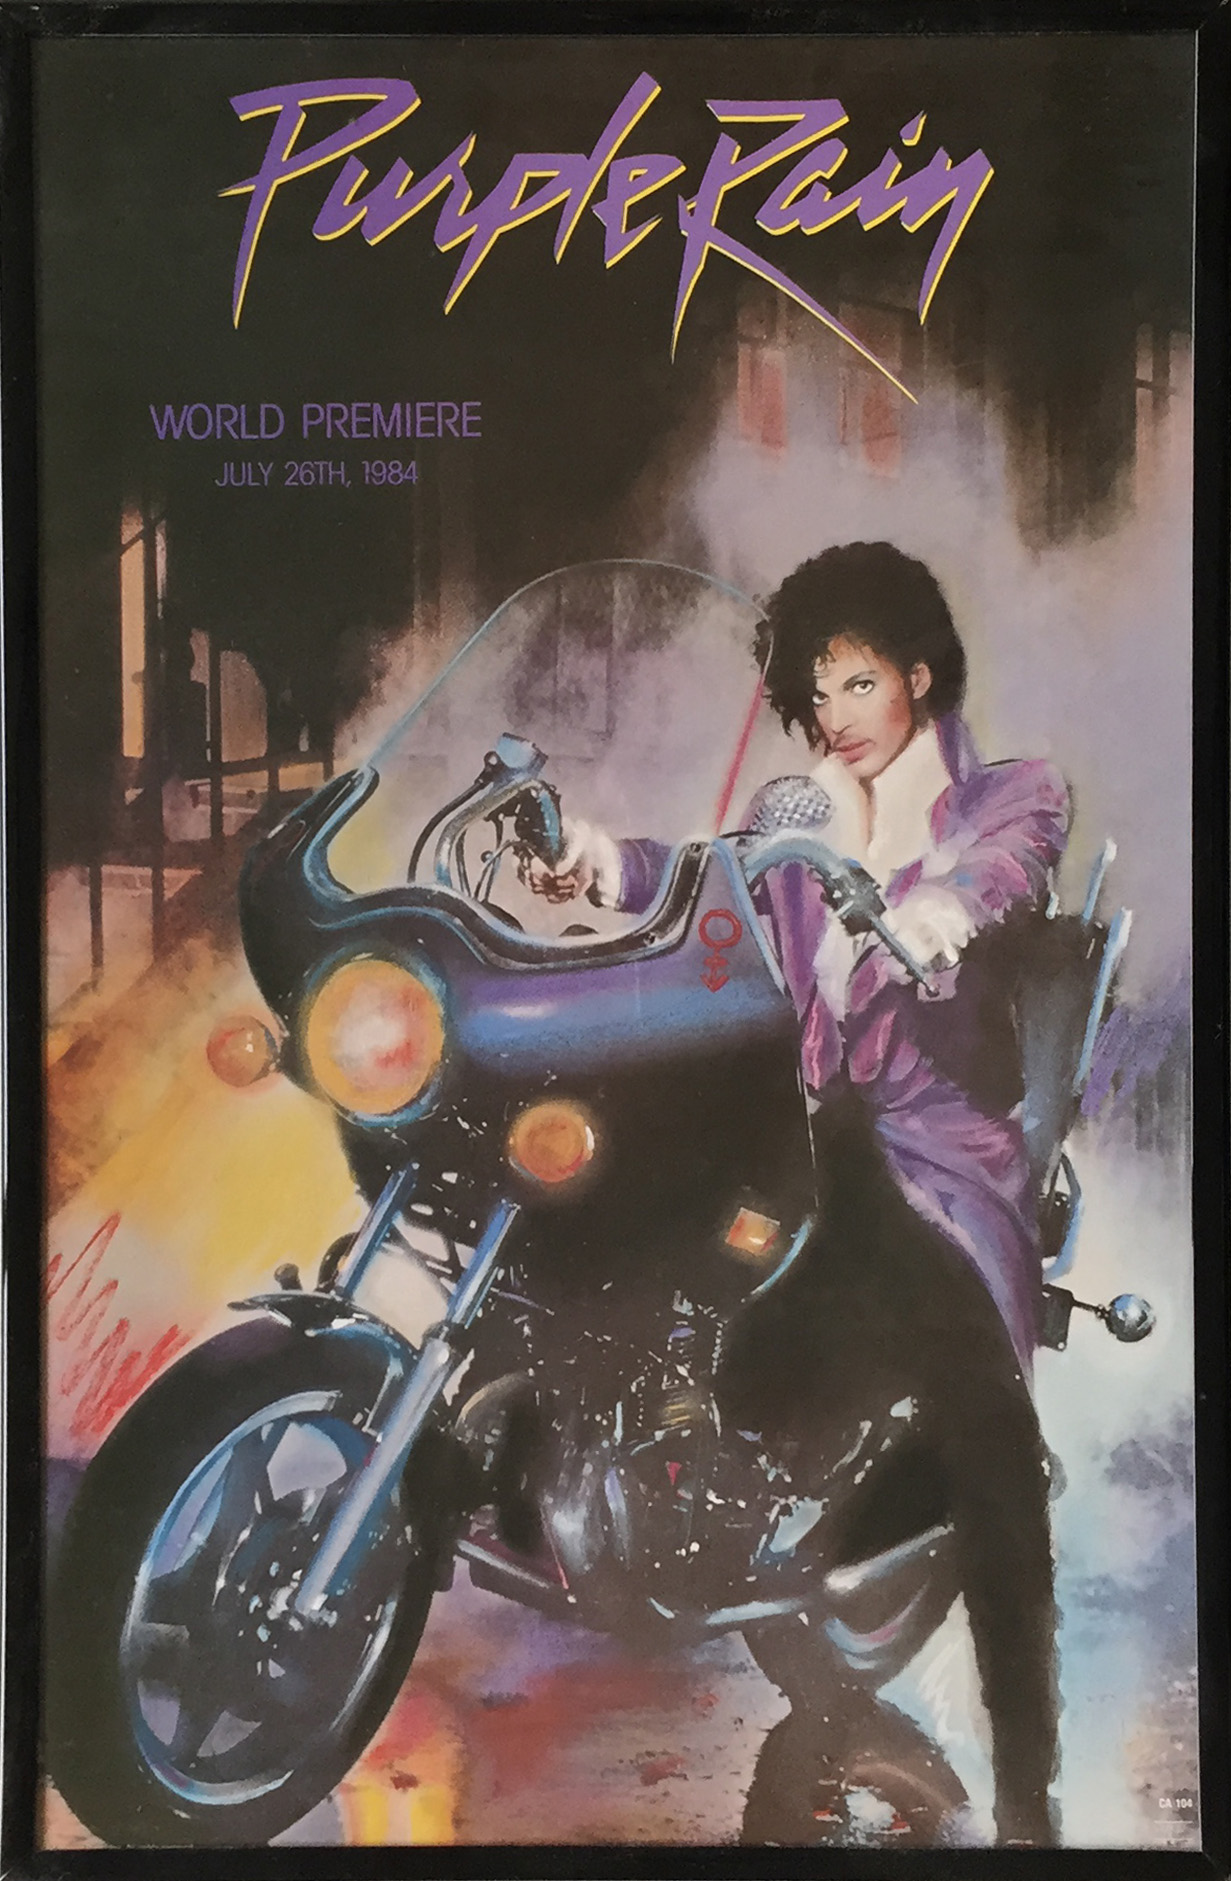 Prince & the Revolution Poster